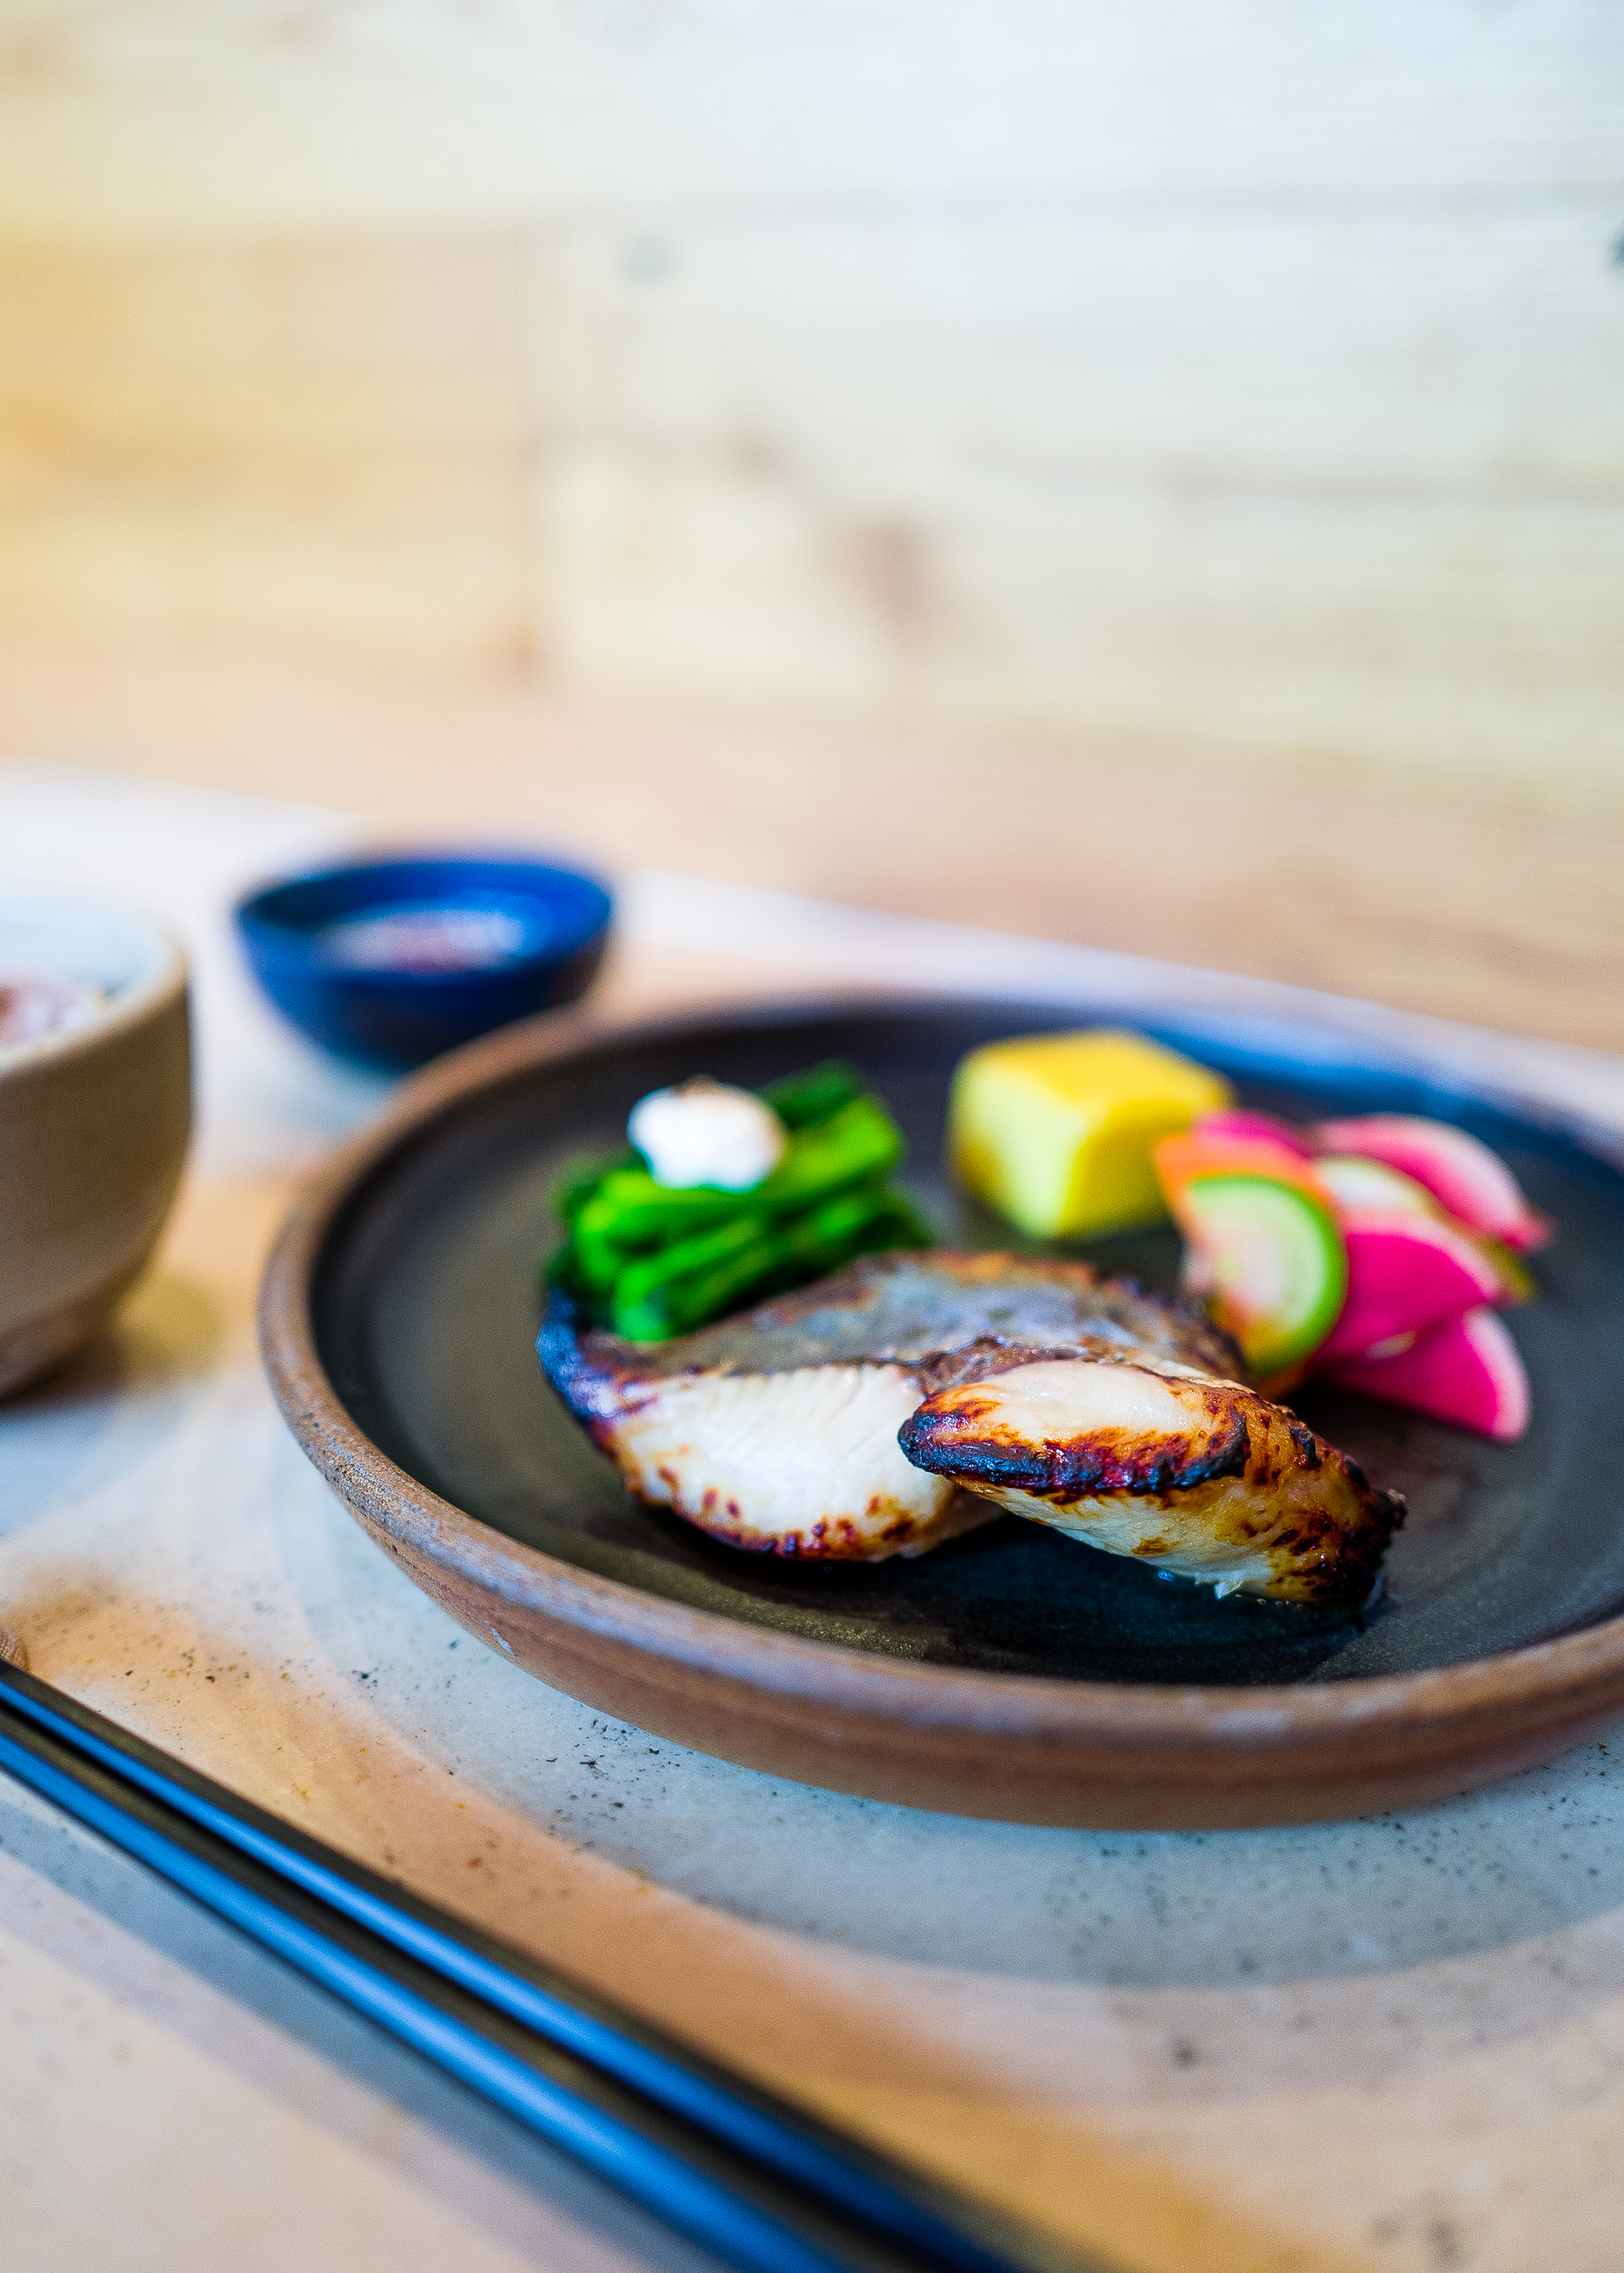 Mackerel cooked with sake lees. They do not only offer mackerel, but it's one of my favorite, so I tend to order it whenever it's on a menu.